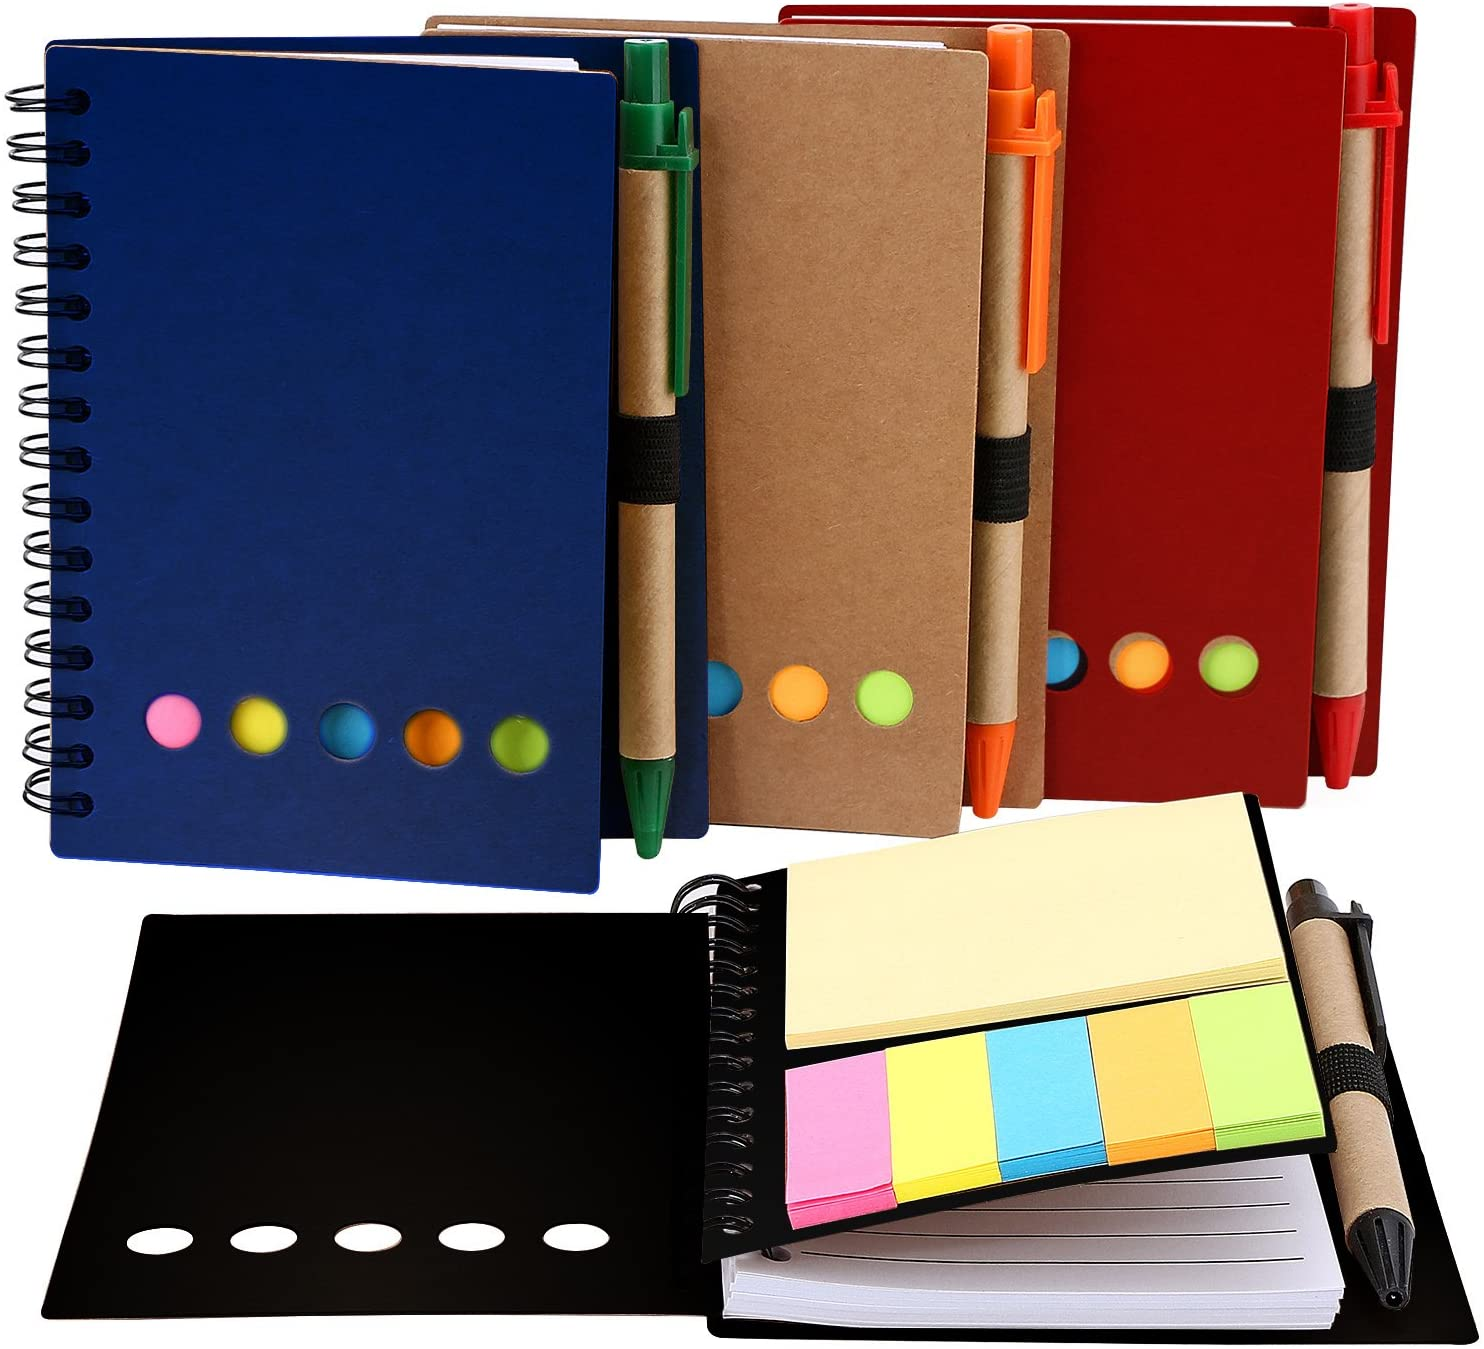 TOODOO 4 Packs Spiral Notebook Lined Notepad with Pen in Holder and Sticky Notes, Page Marker Colored Index Tabs Flags (Red, Blue, Brown, Black Cover)